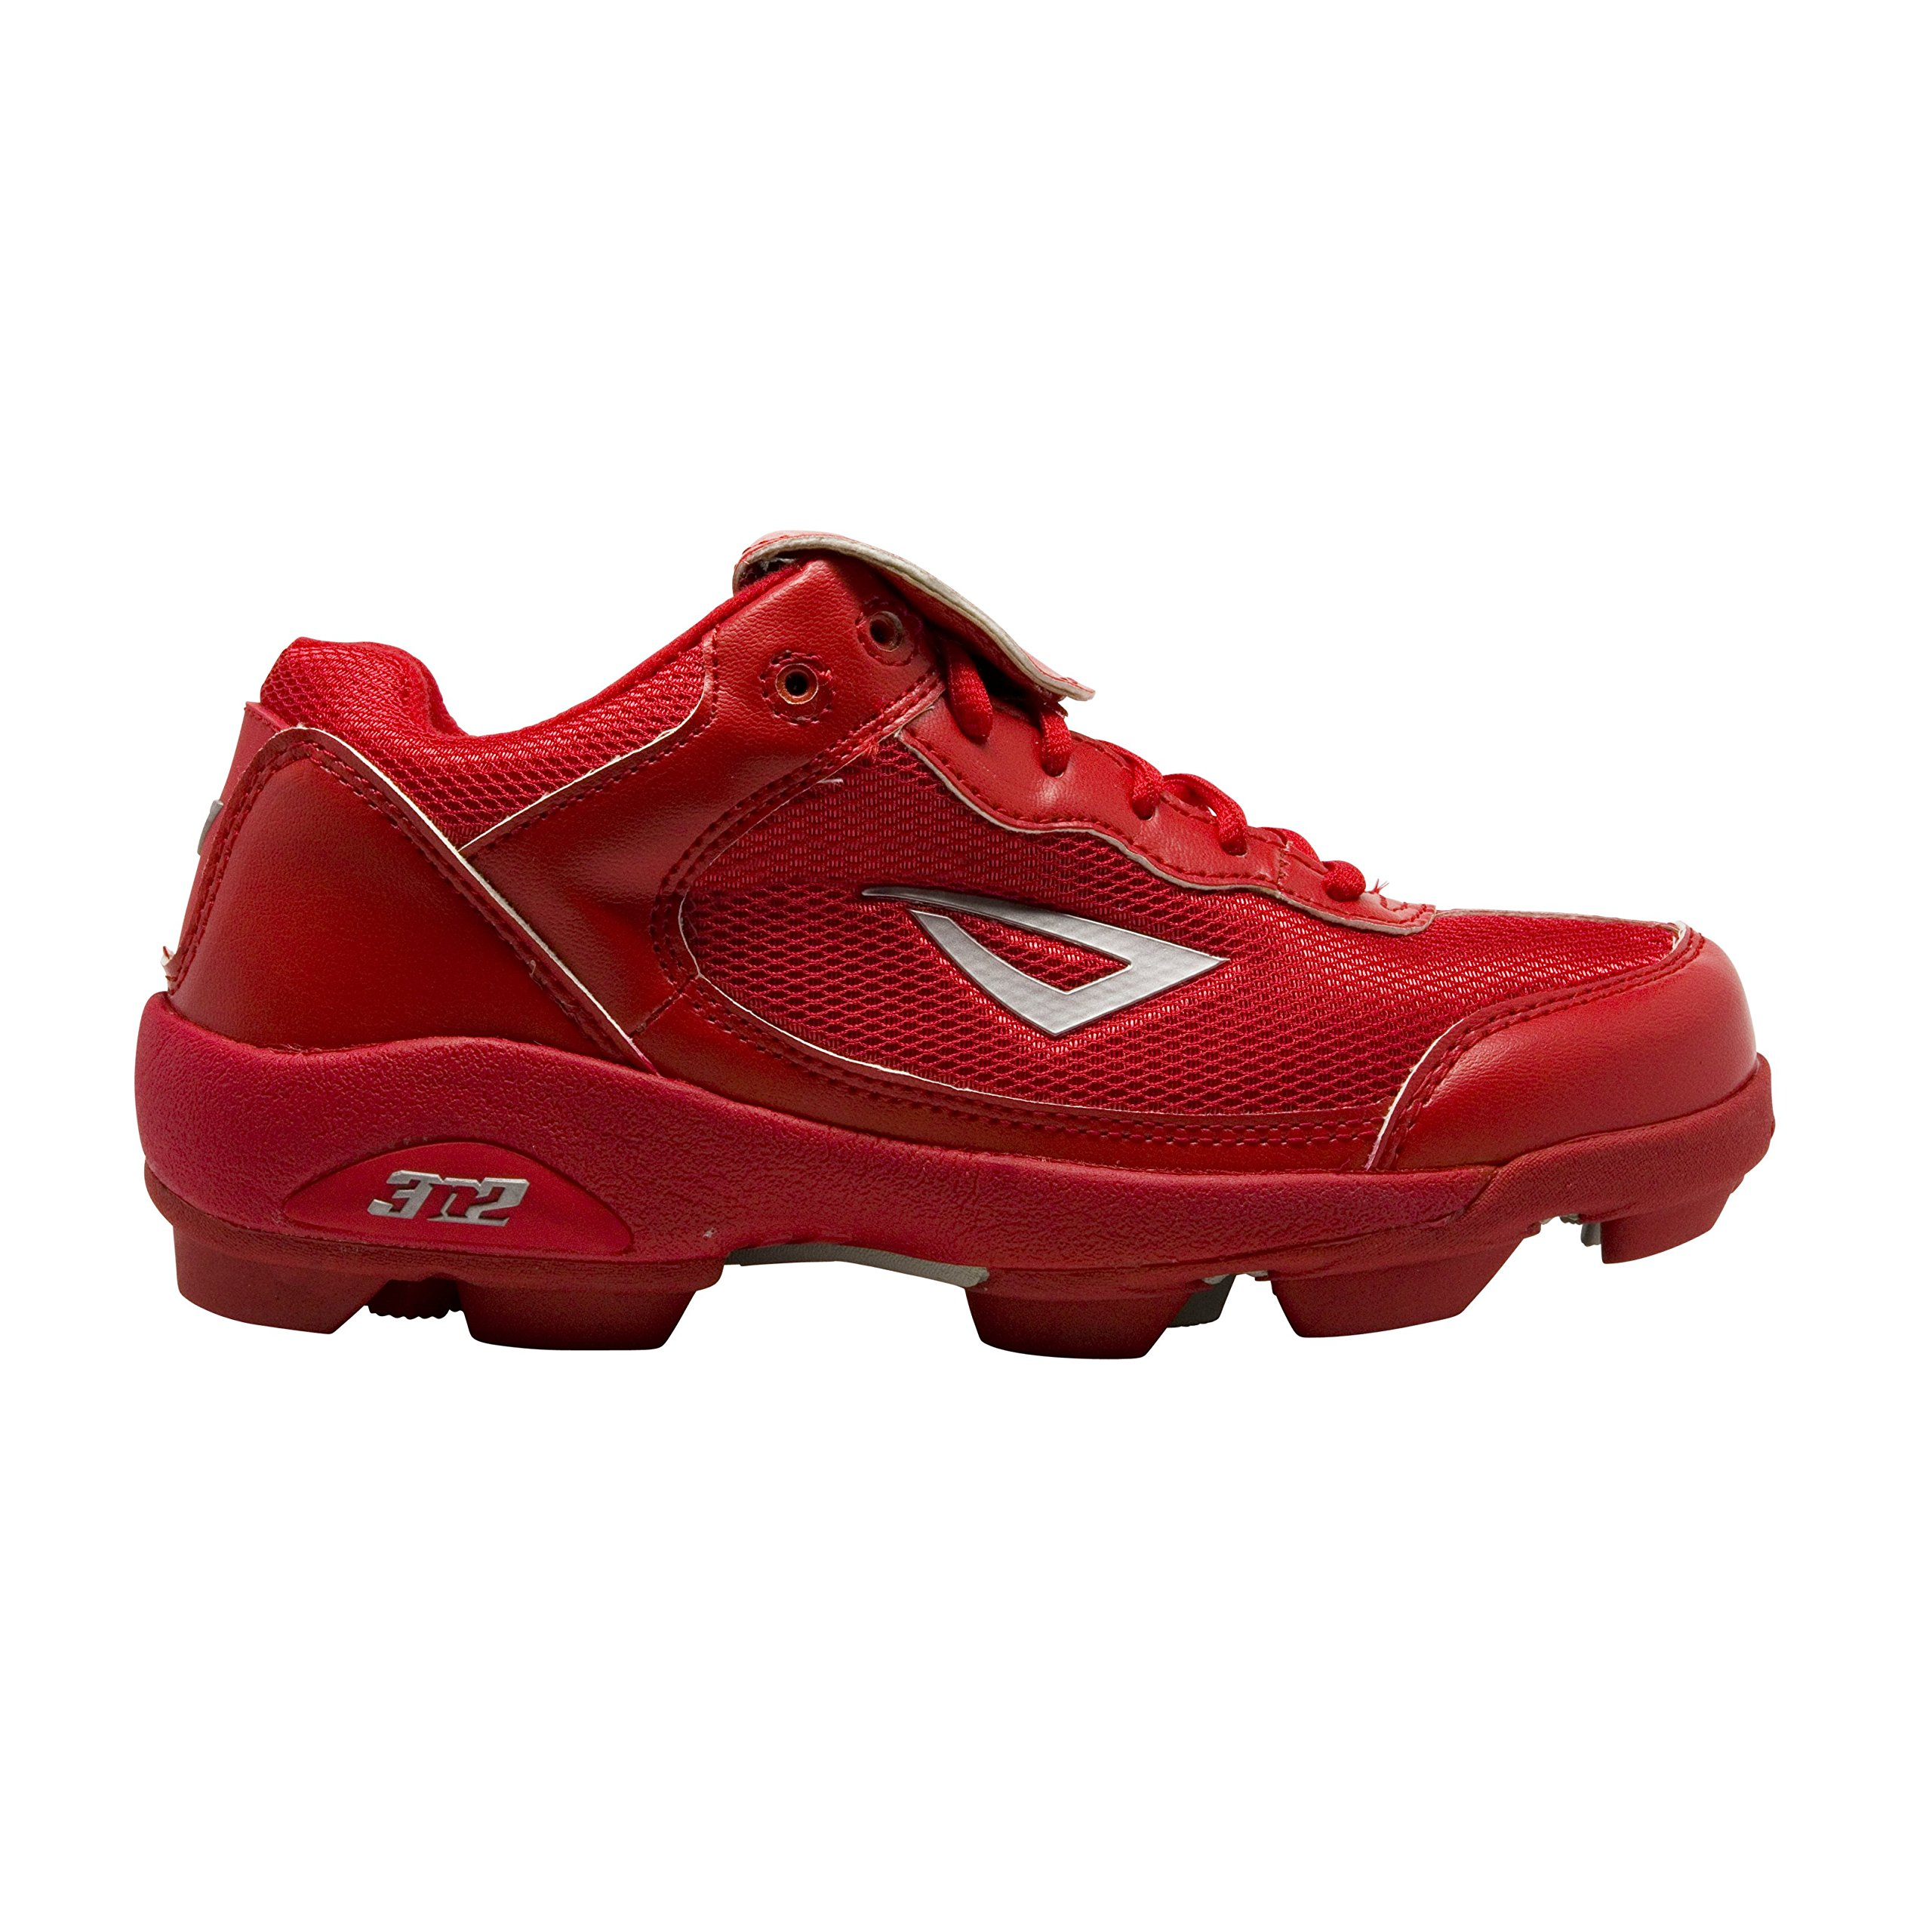 3N2 Youth Rookie Shoes, Red/Silver, Size 5.5 by 3N2